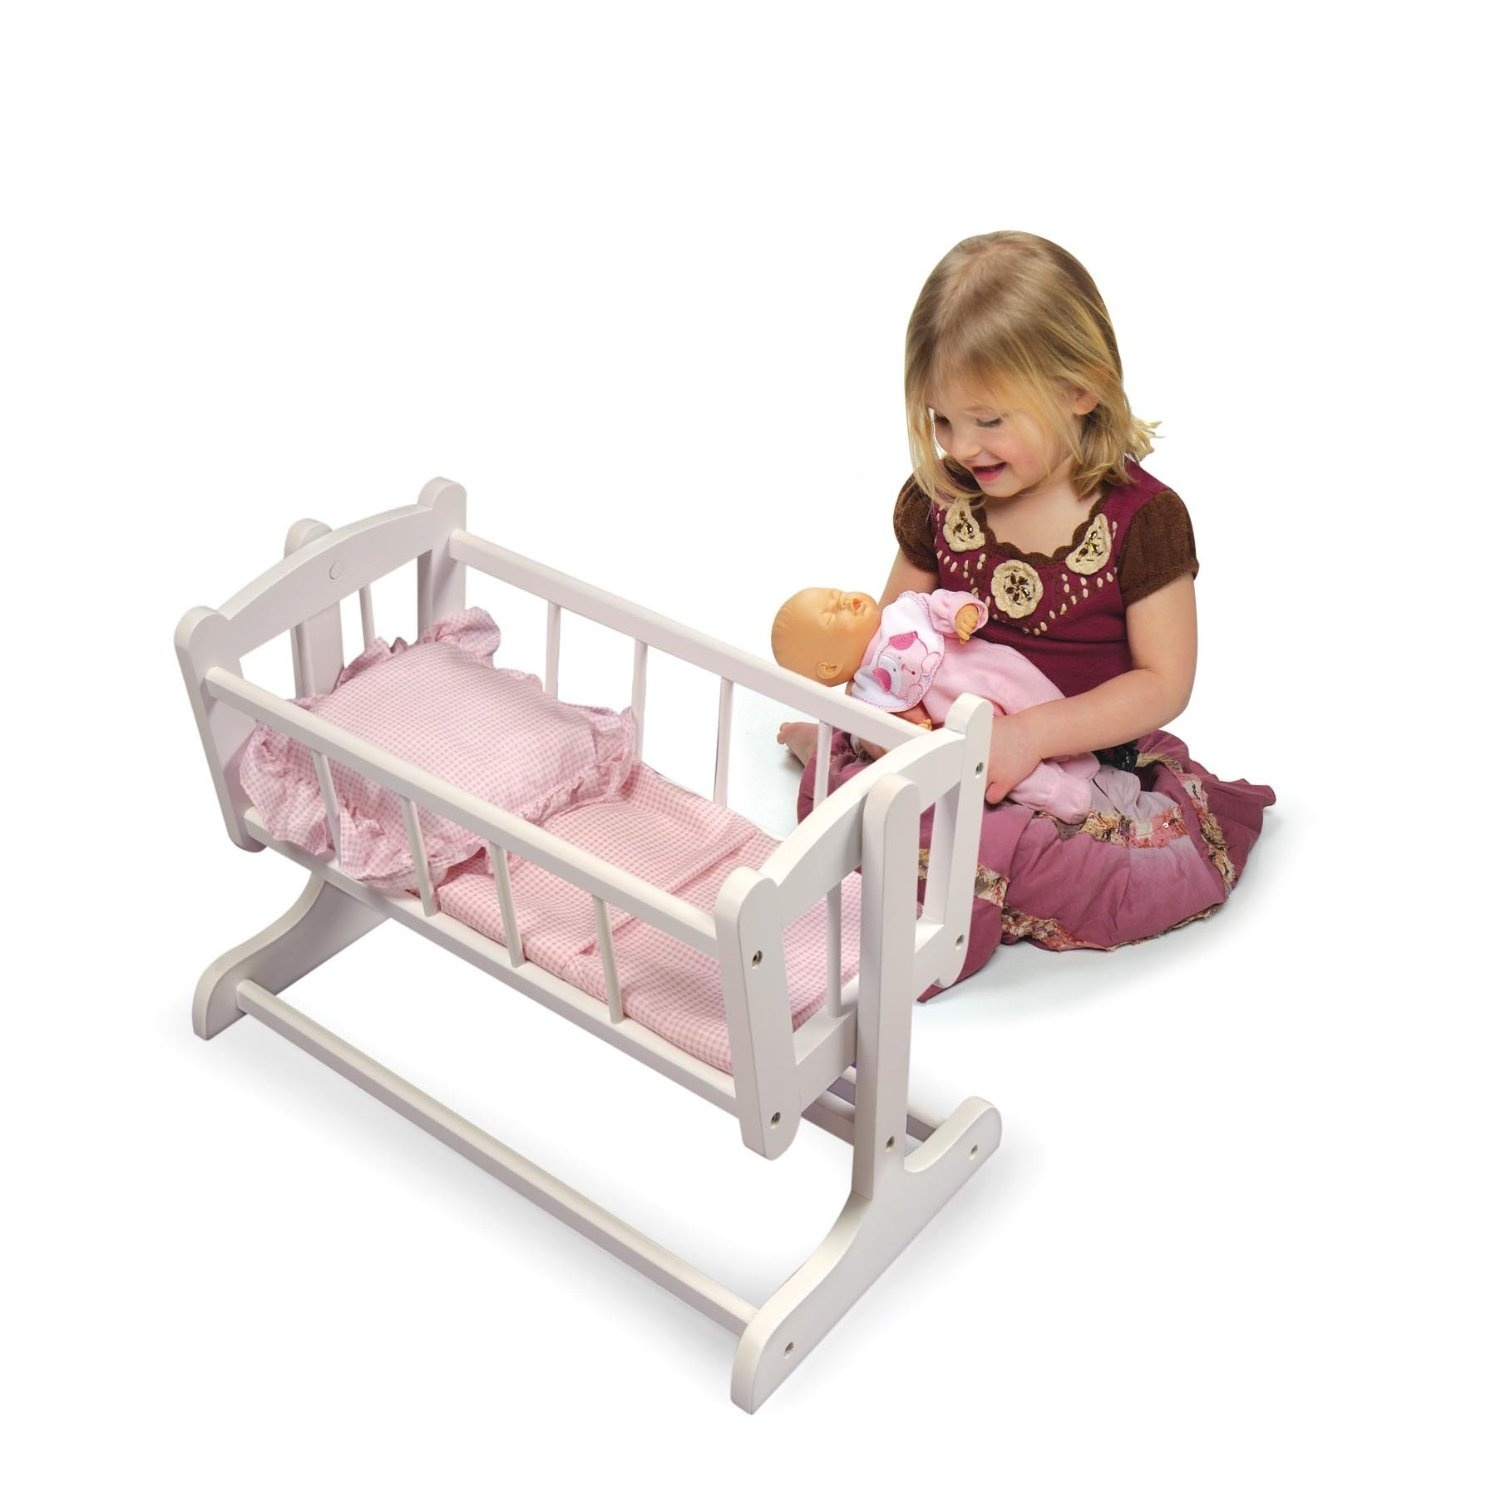 Badger Basket Heirloom Style Doll Cradle With Blanket U0026 Pillow (fits  American Girl Dolls) By Badger Basket Toys   Shop Online For Toys In  Australia